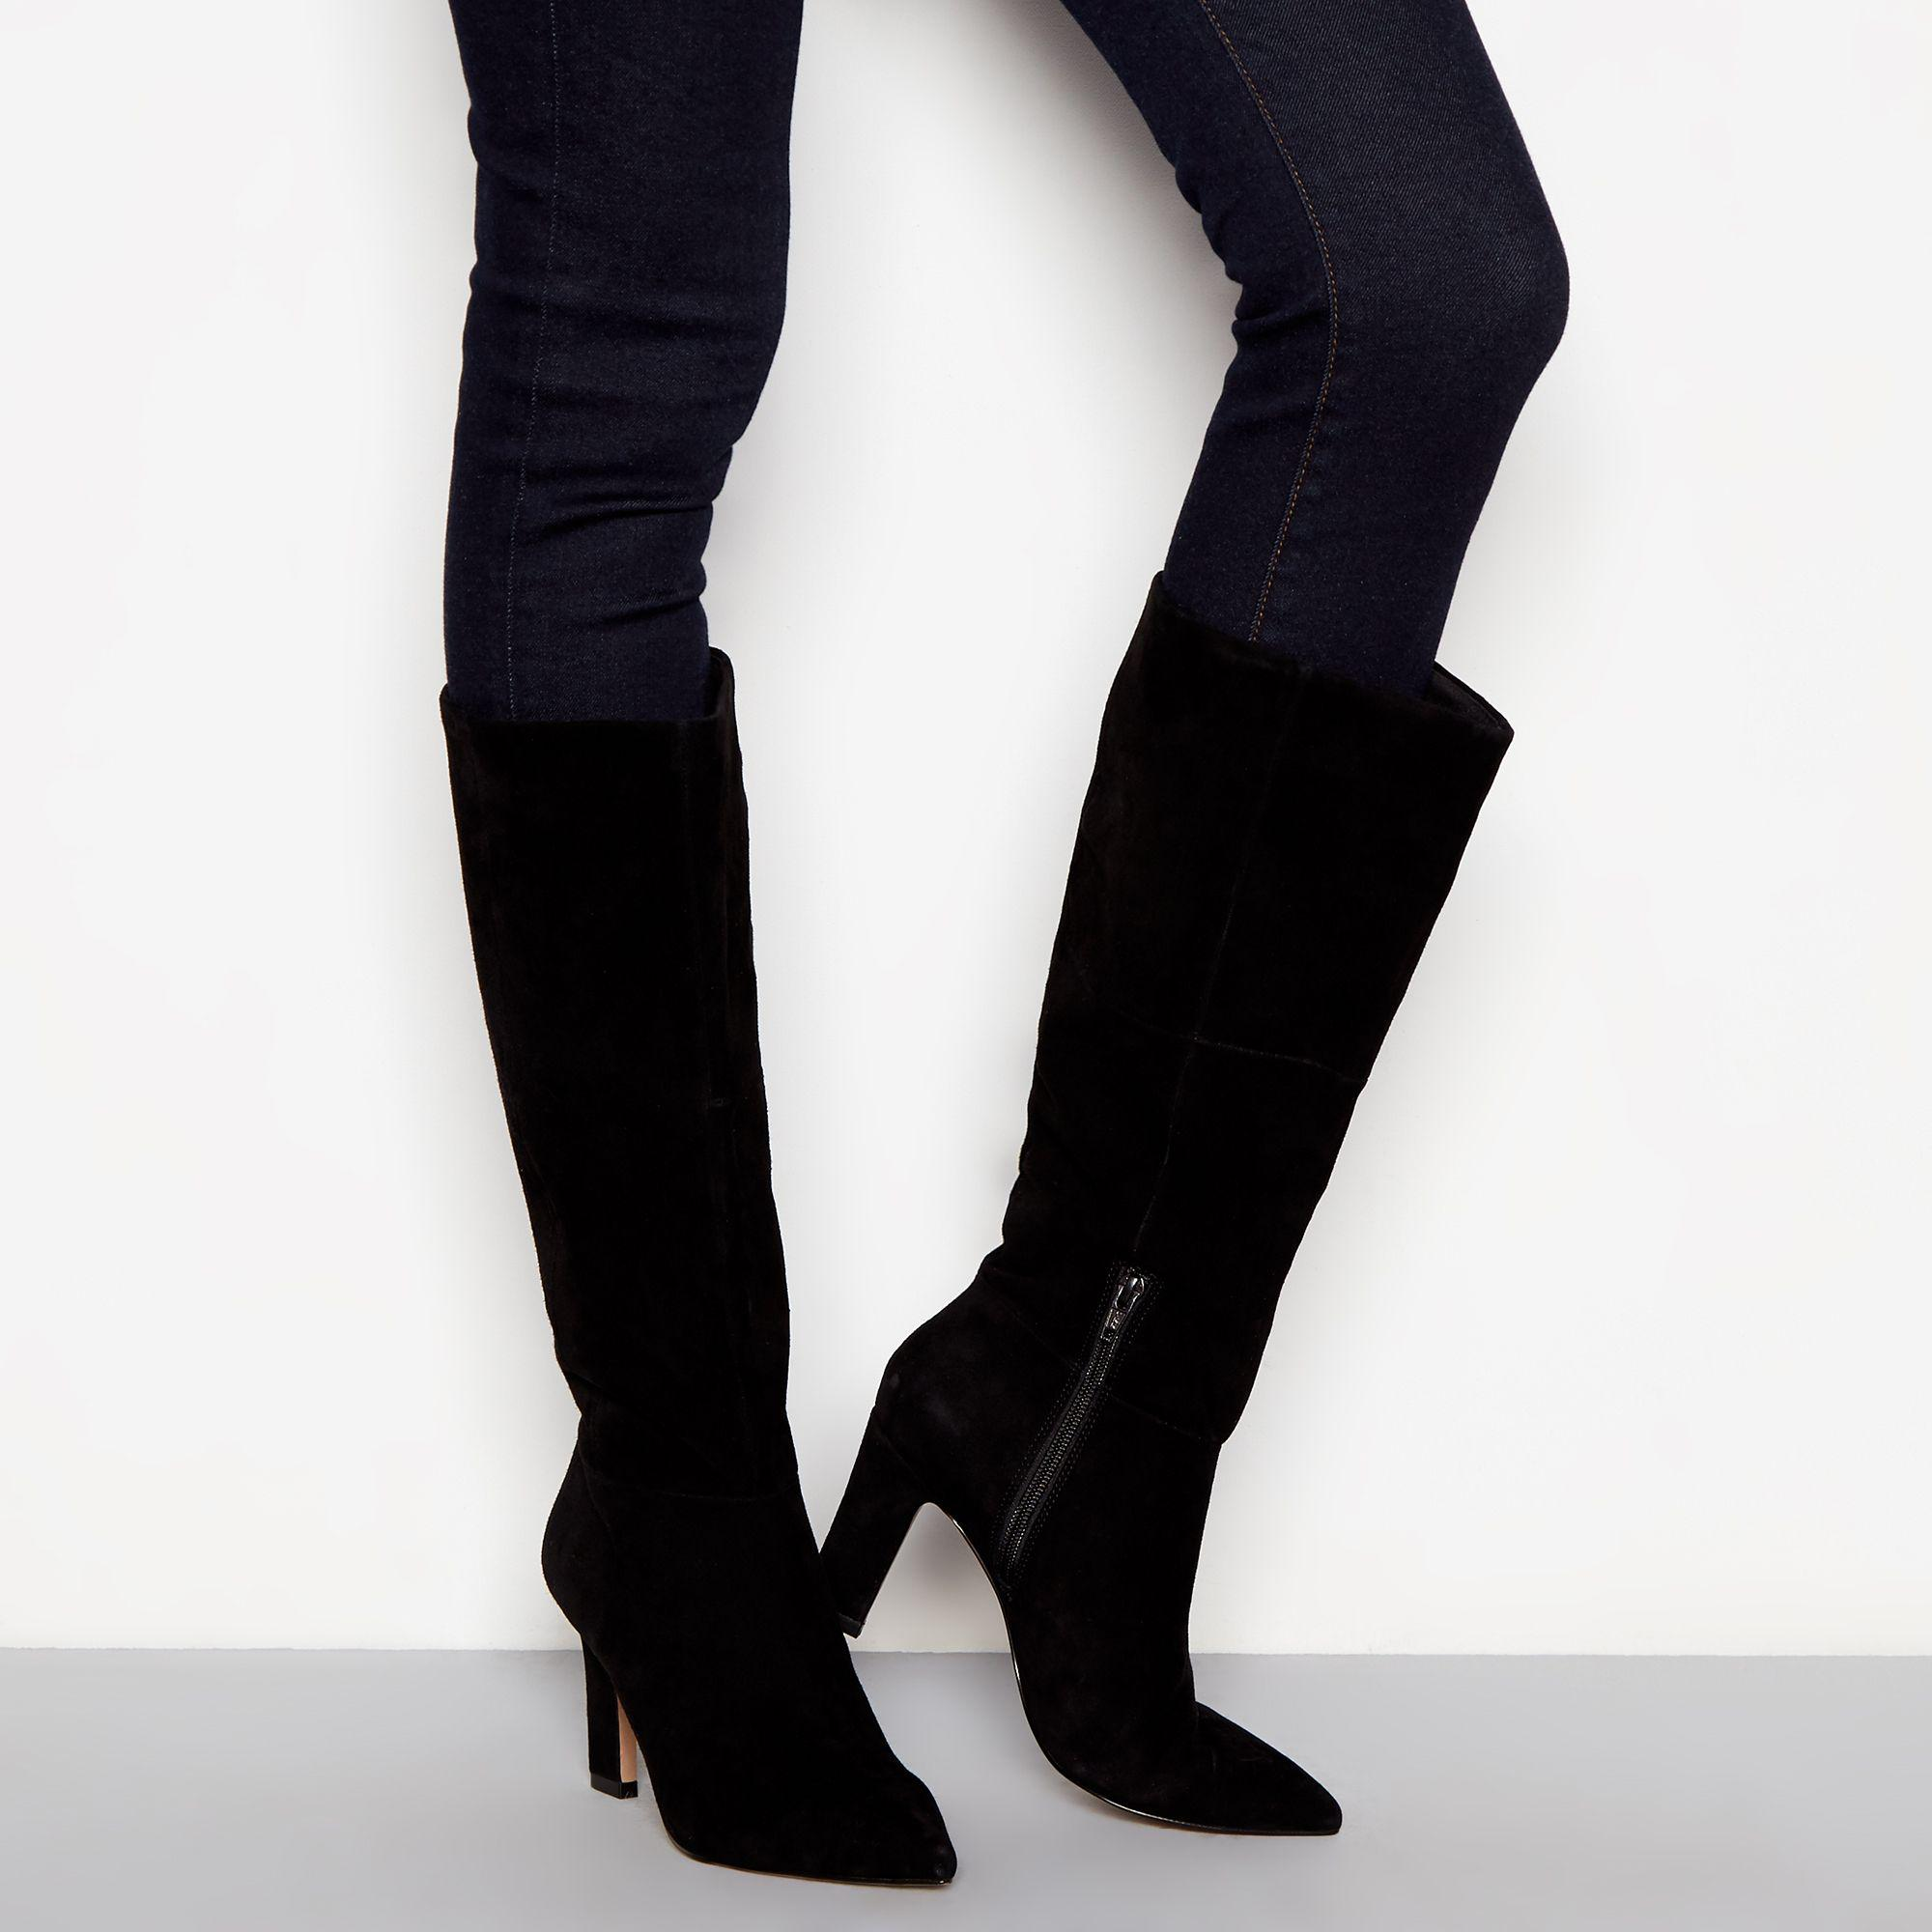 8d18929c3db J By Jasper Conran Black Suede Slim Heel Knee High Boots